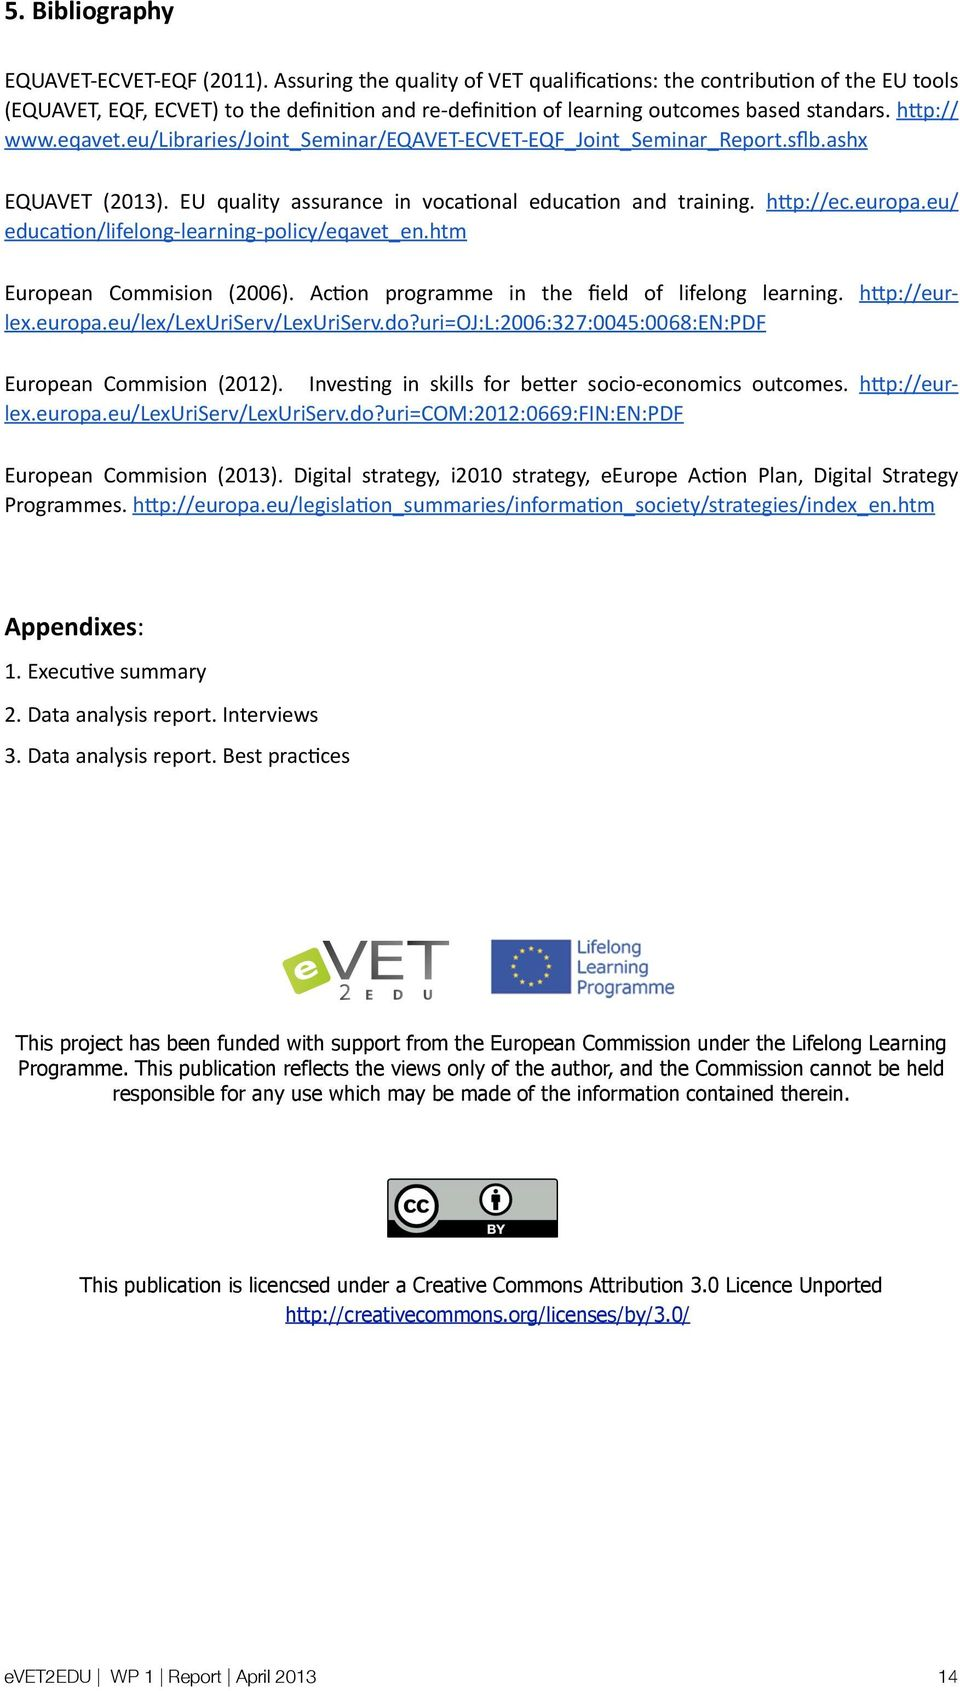 eu/libraries/joint_seminar/eqavet- ECVET- EQF_Joint_Seminar_Report.sflb.ashx EQUAVET (2013). EU quality assurance in voca/onal educa/on and training. hop://ec.europa.